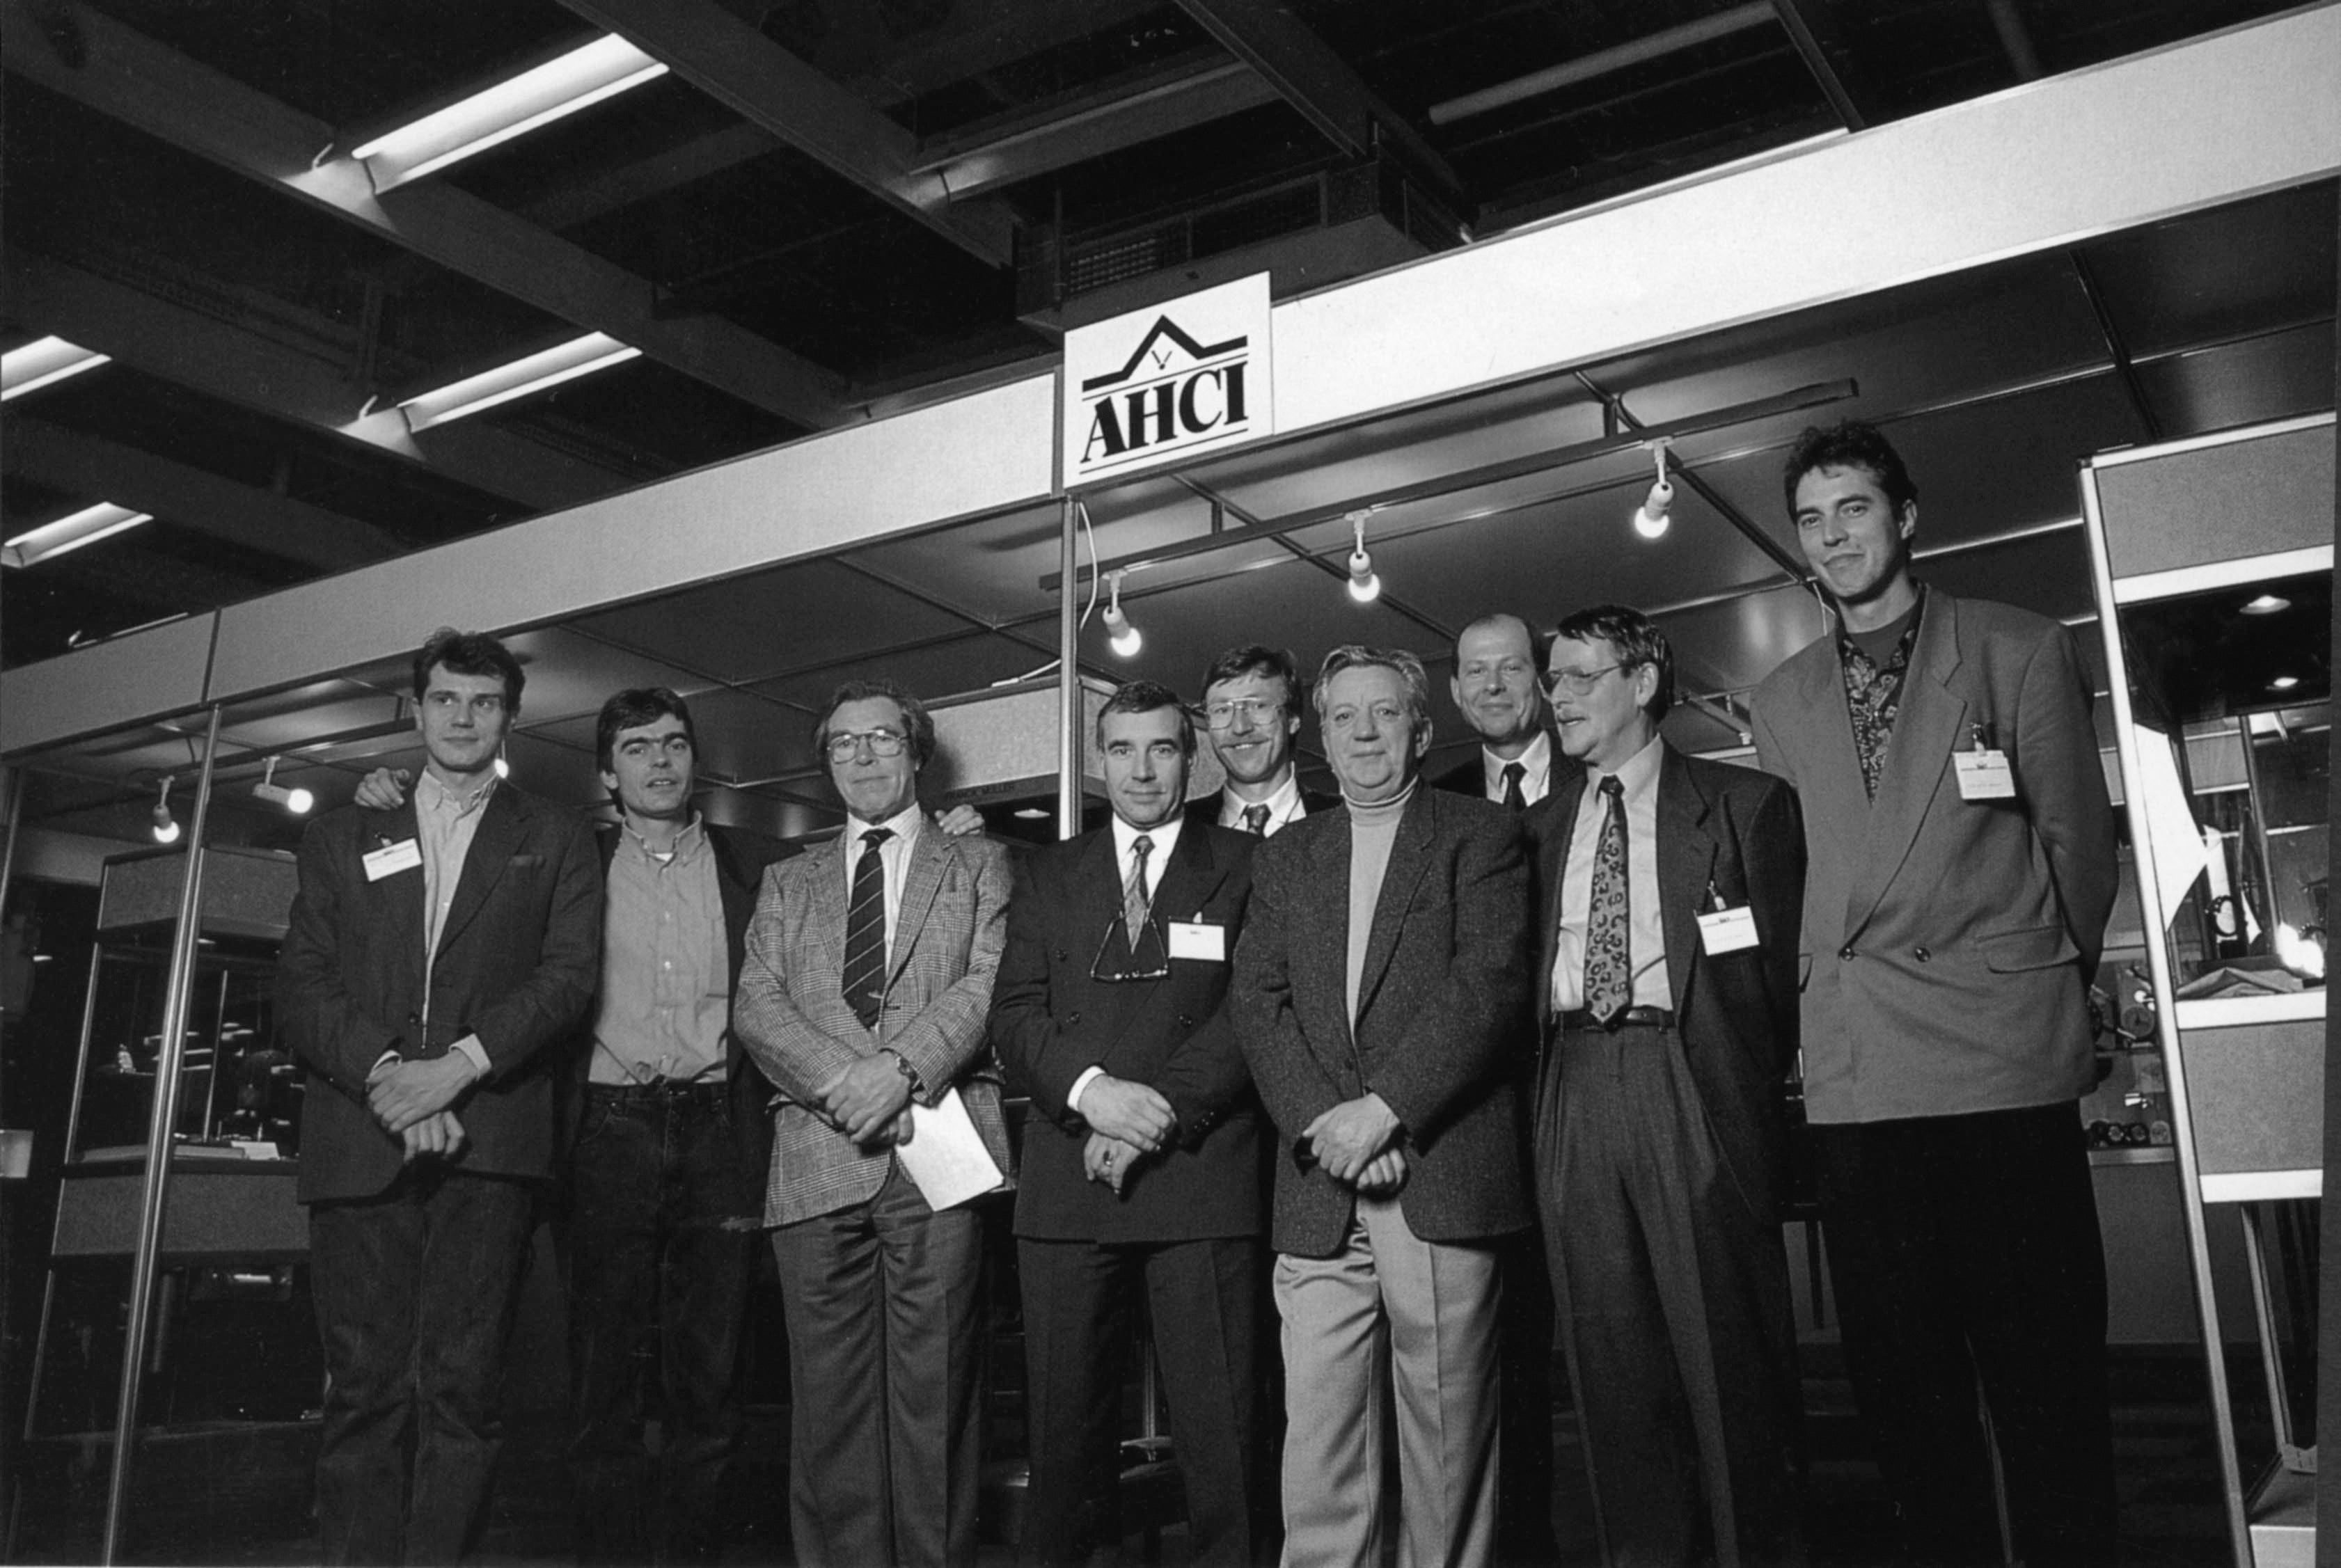 AHCI booth at Basel watch fair in 1987 In The Origins of the AHCI for A Collected Man London